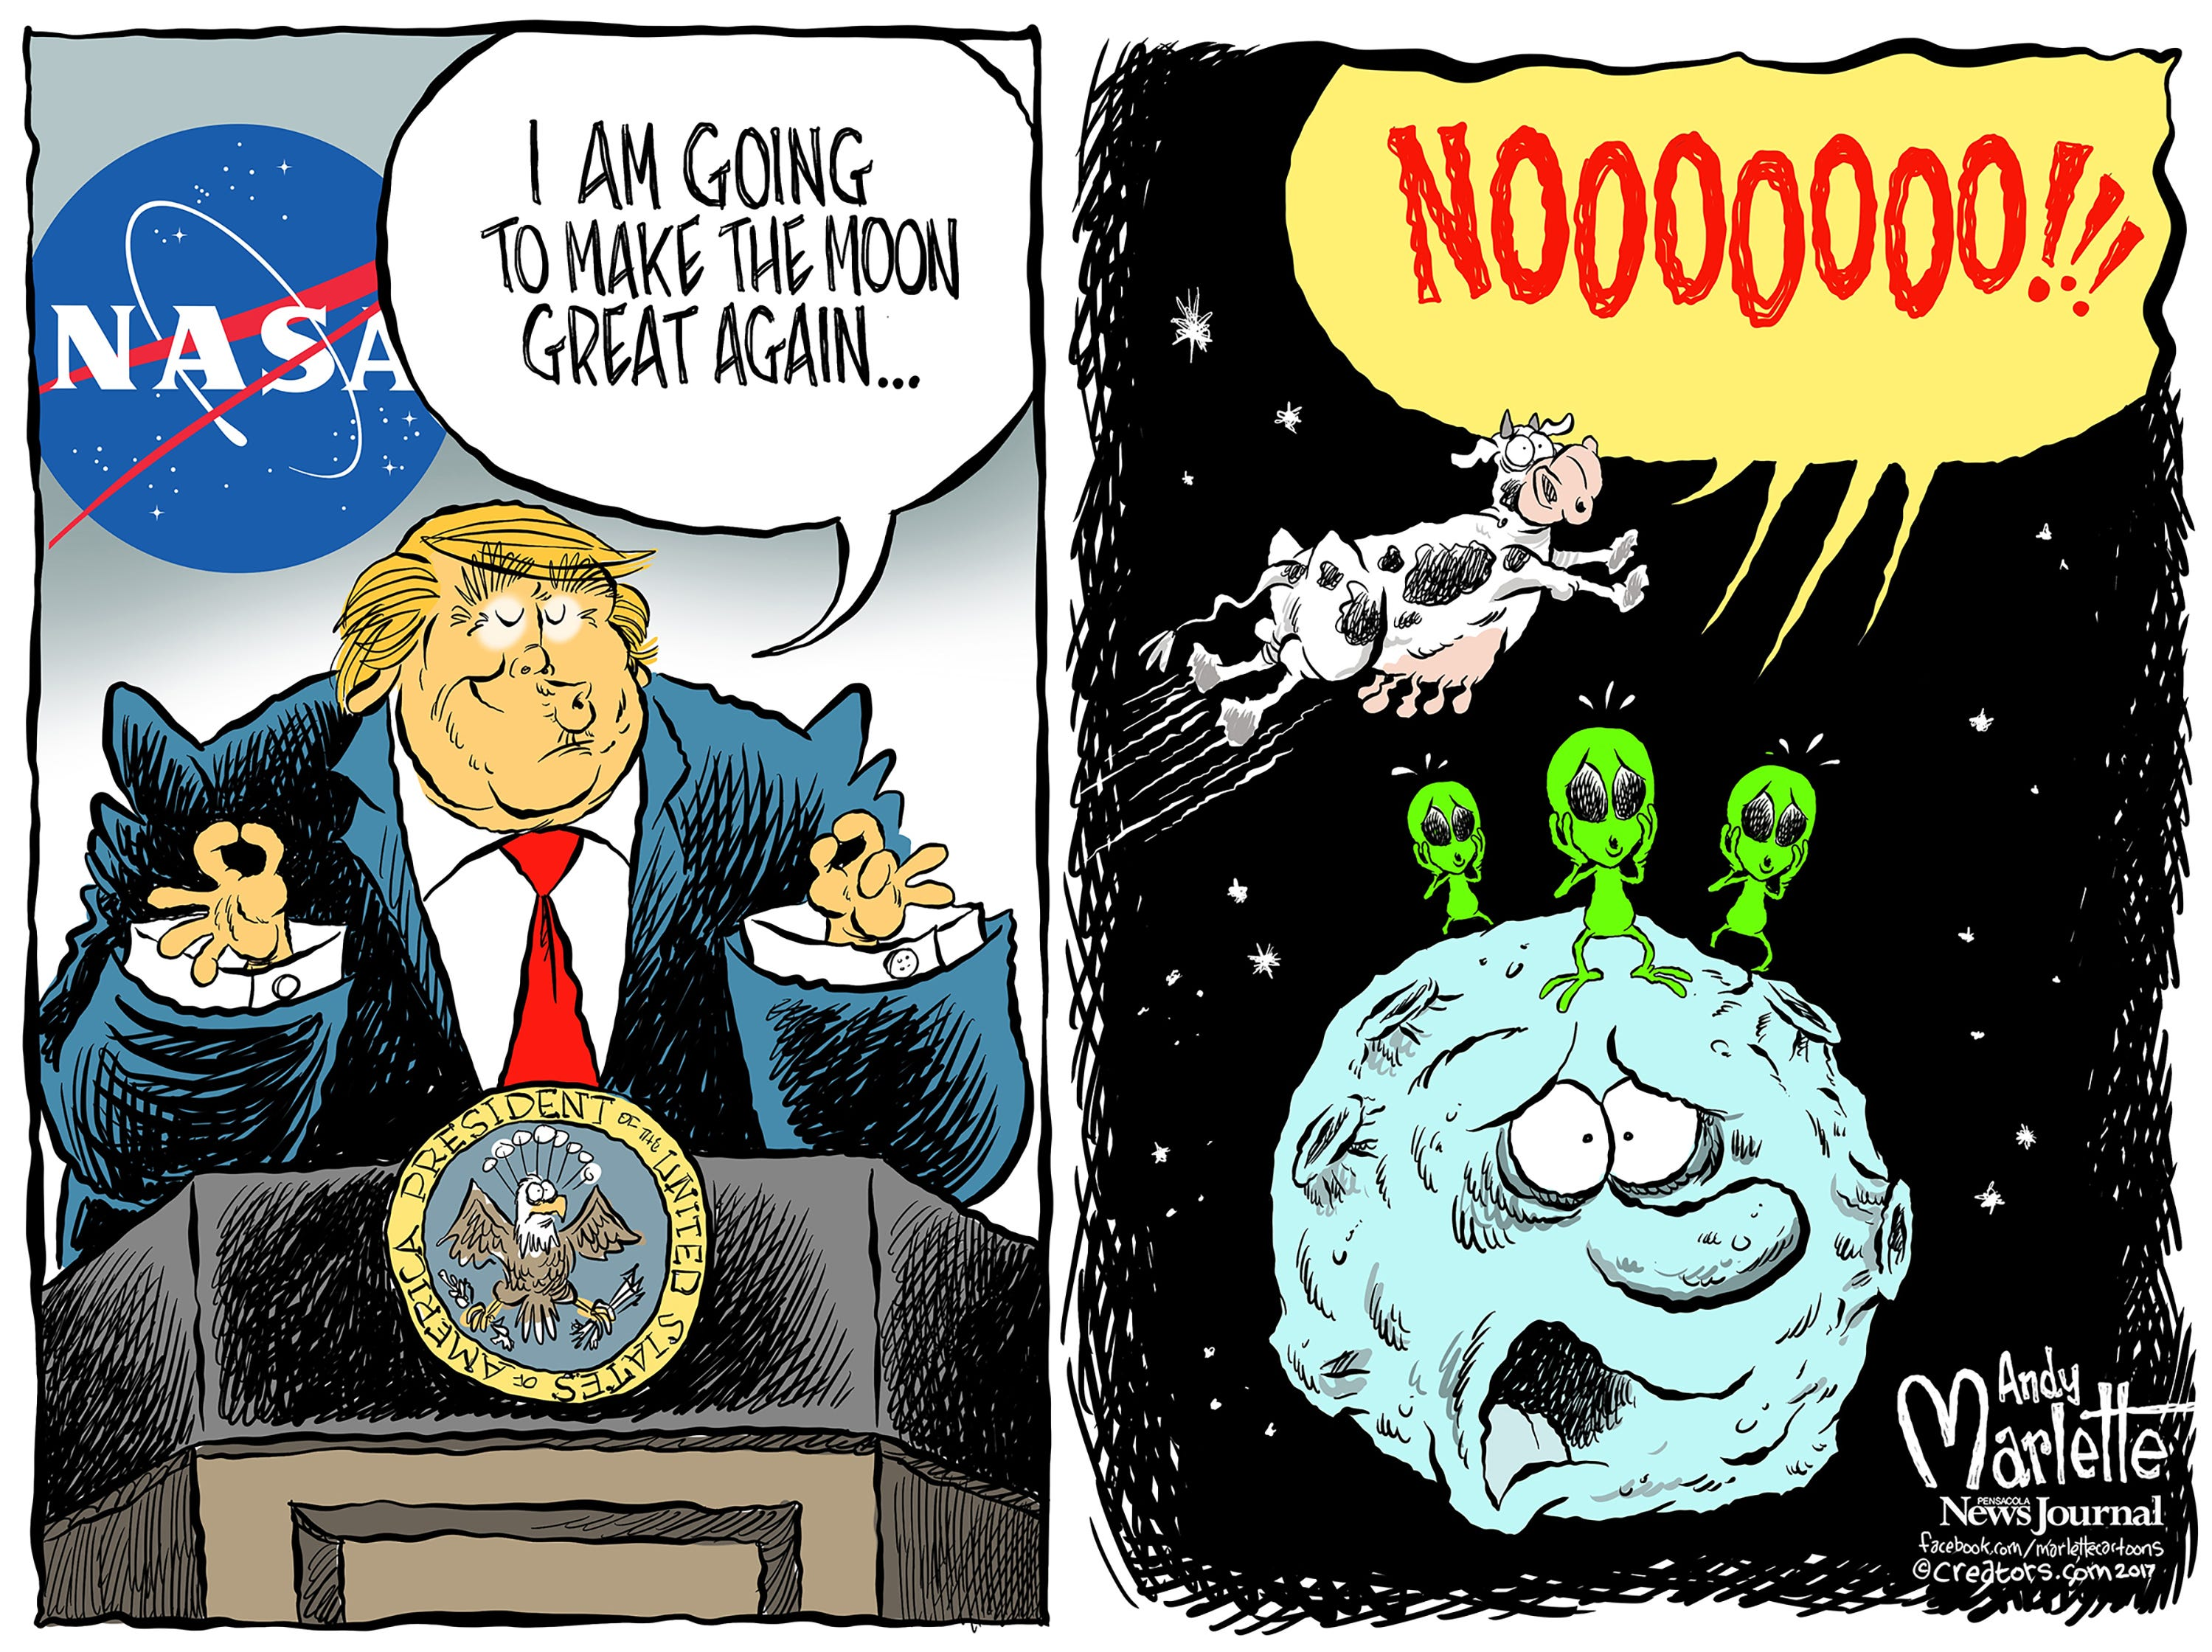 Originally published in December 2017. The cartoonist's homepage, pnj.com/opinion